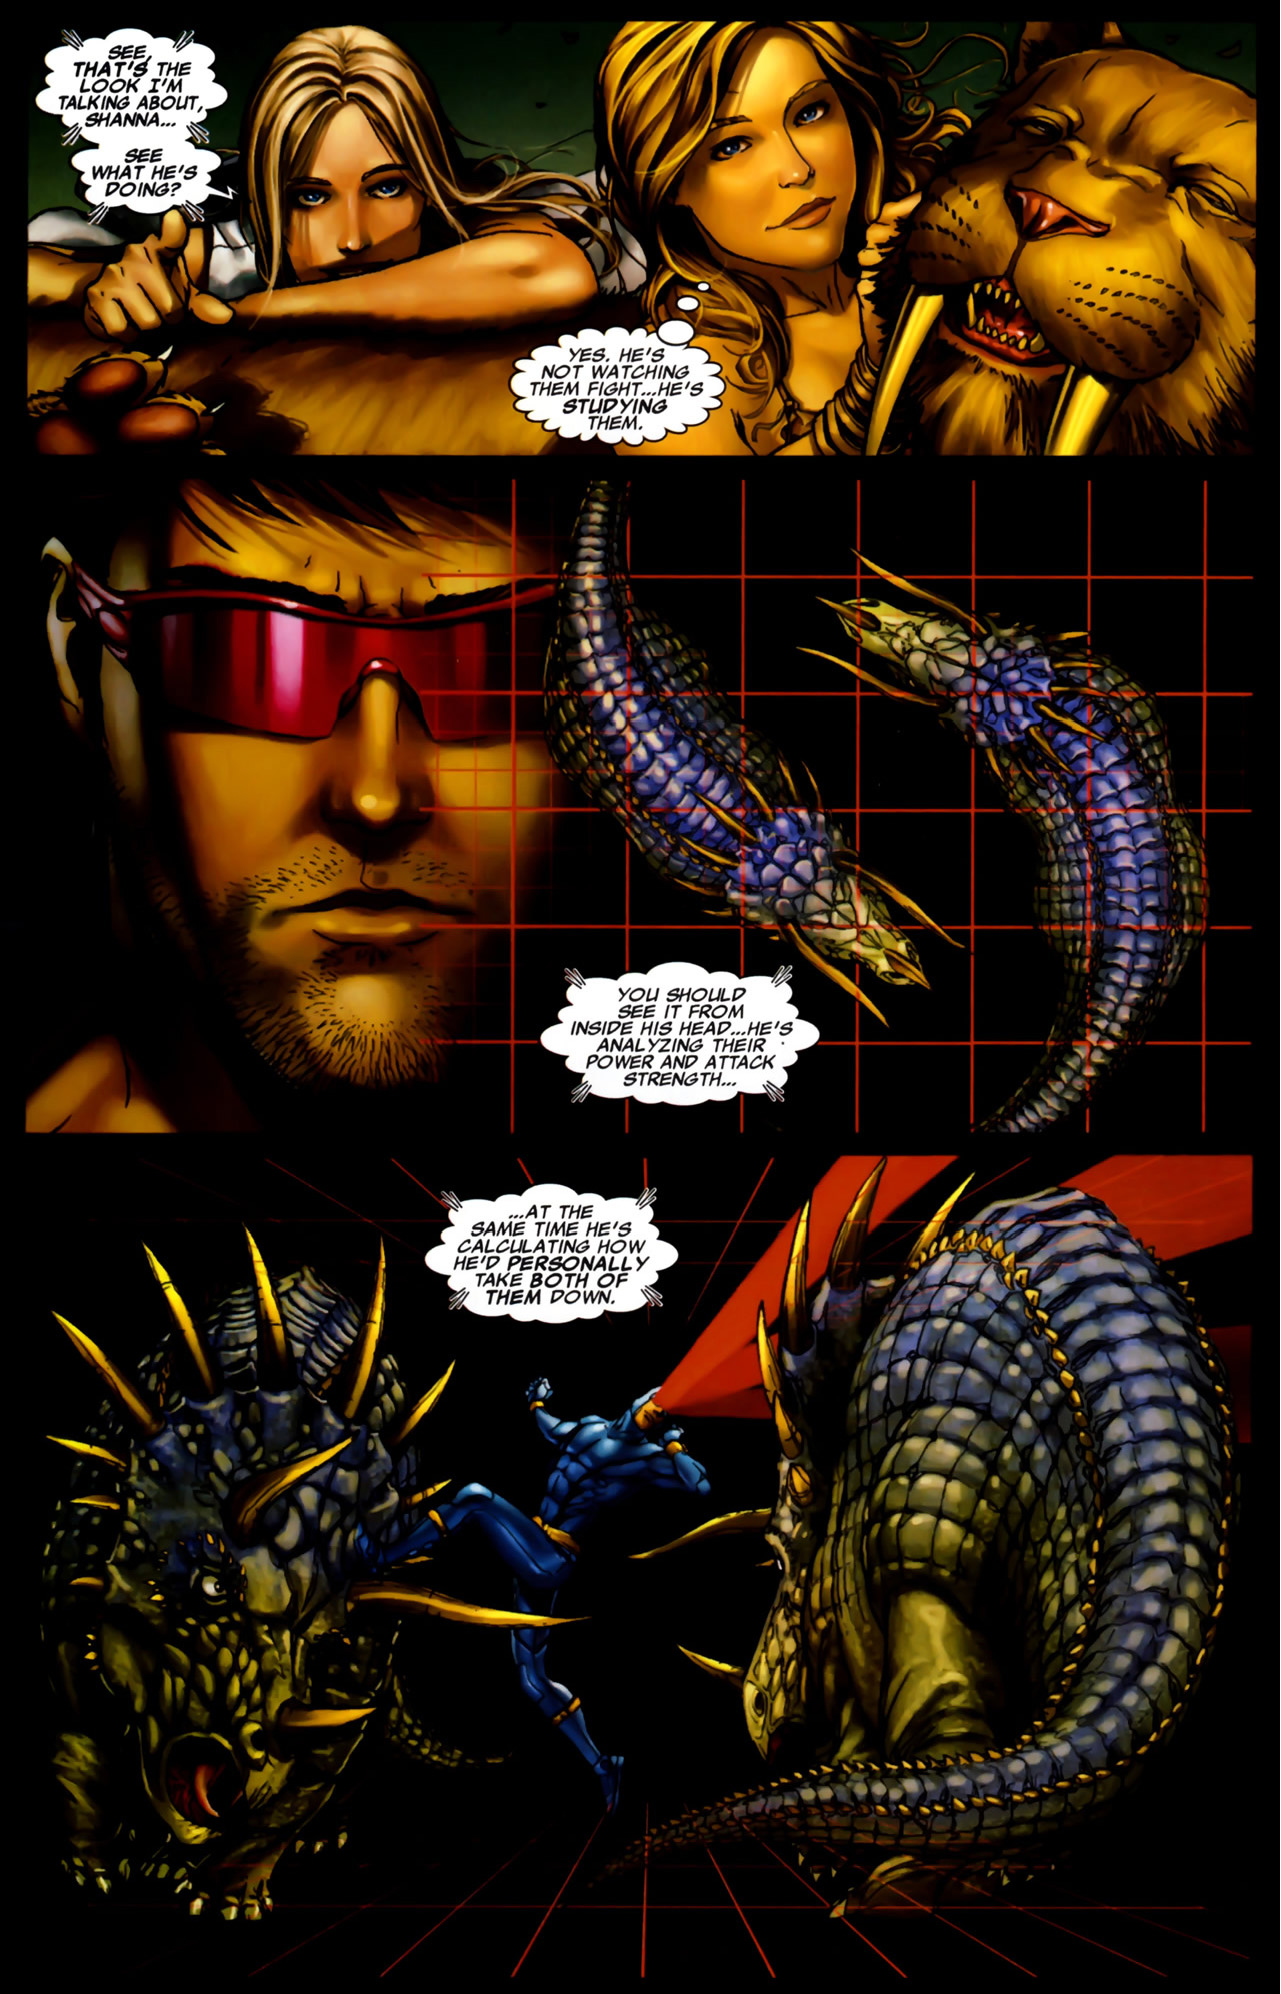 how cyclops studies and analyzes opponents